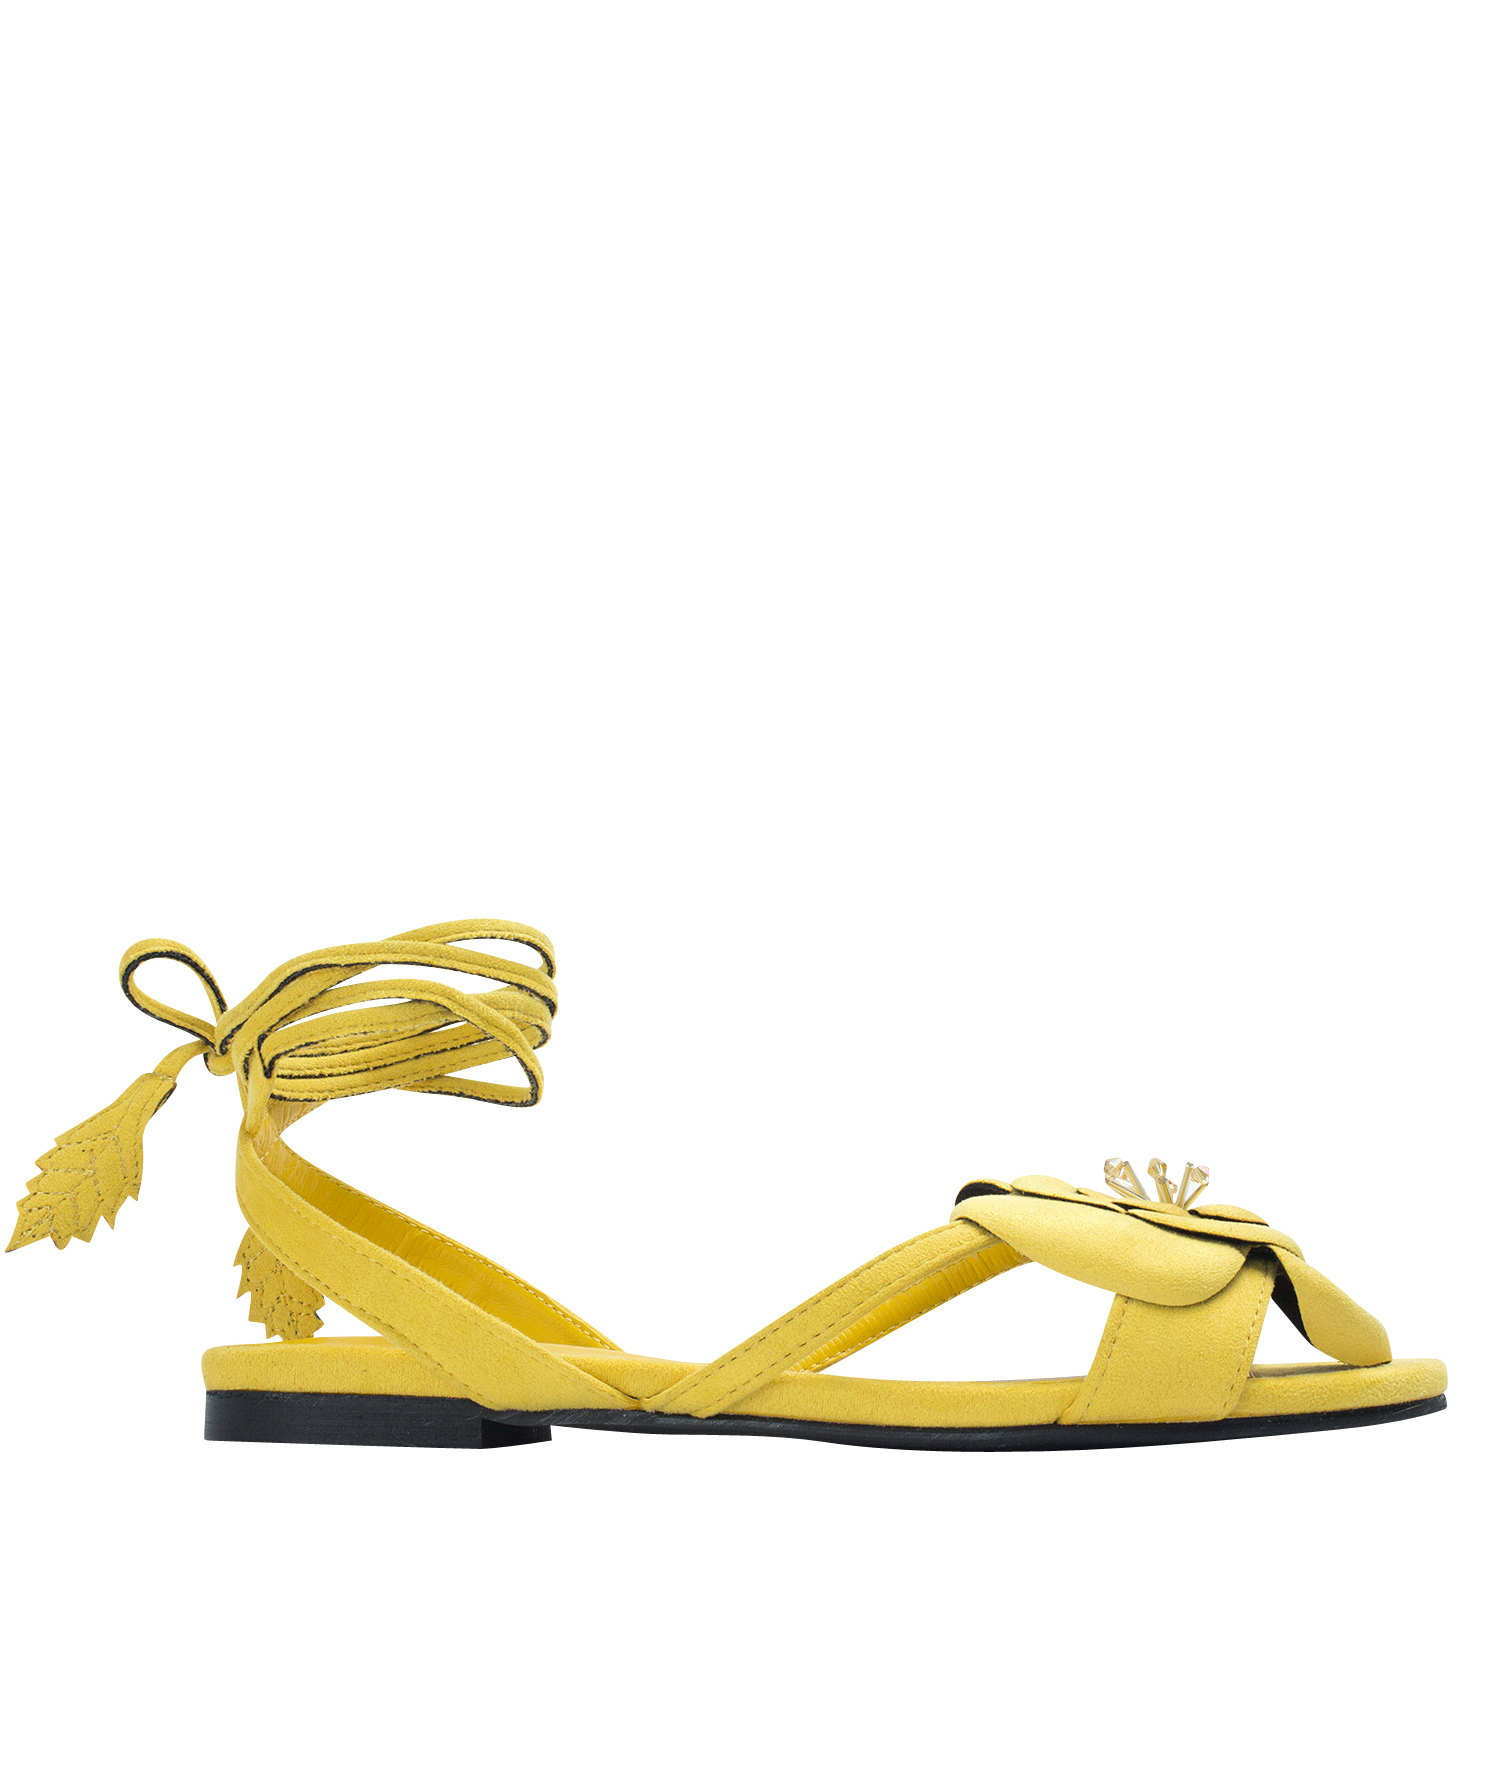 Annakastle Womens Flower Ankle-Wrap Flat Sandals Yellow